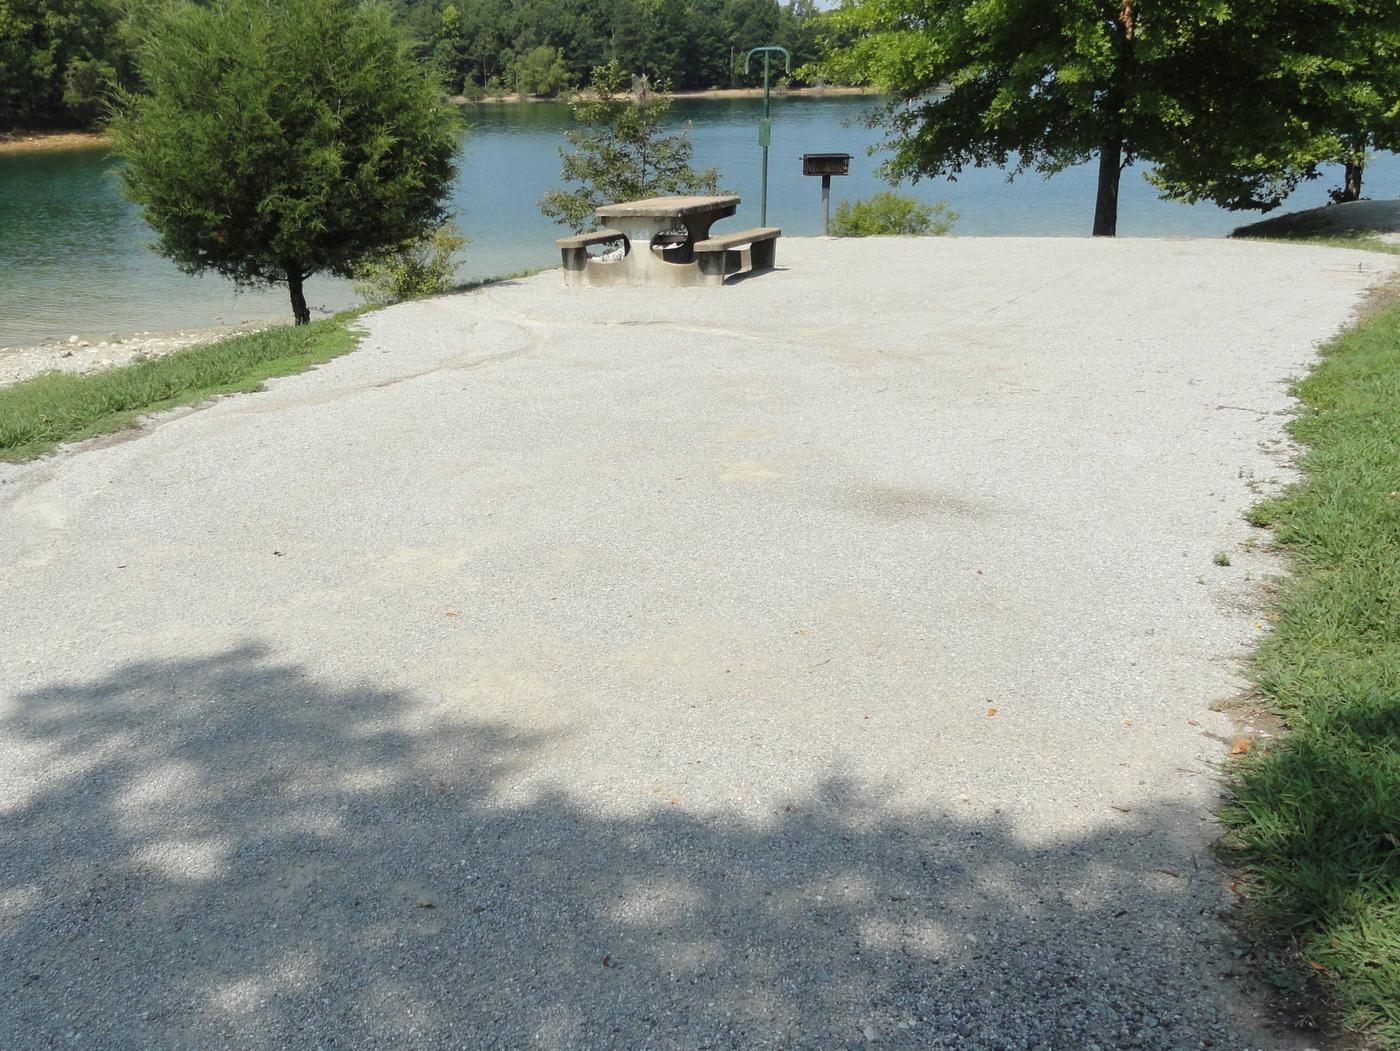 LILLYDALE CAMPGROUND SITE # 55